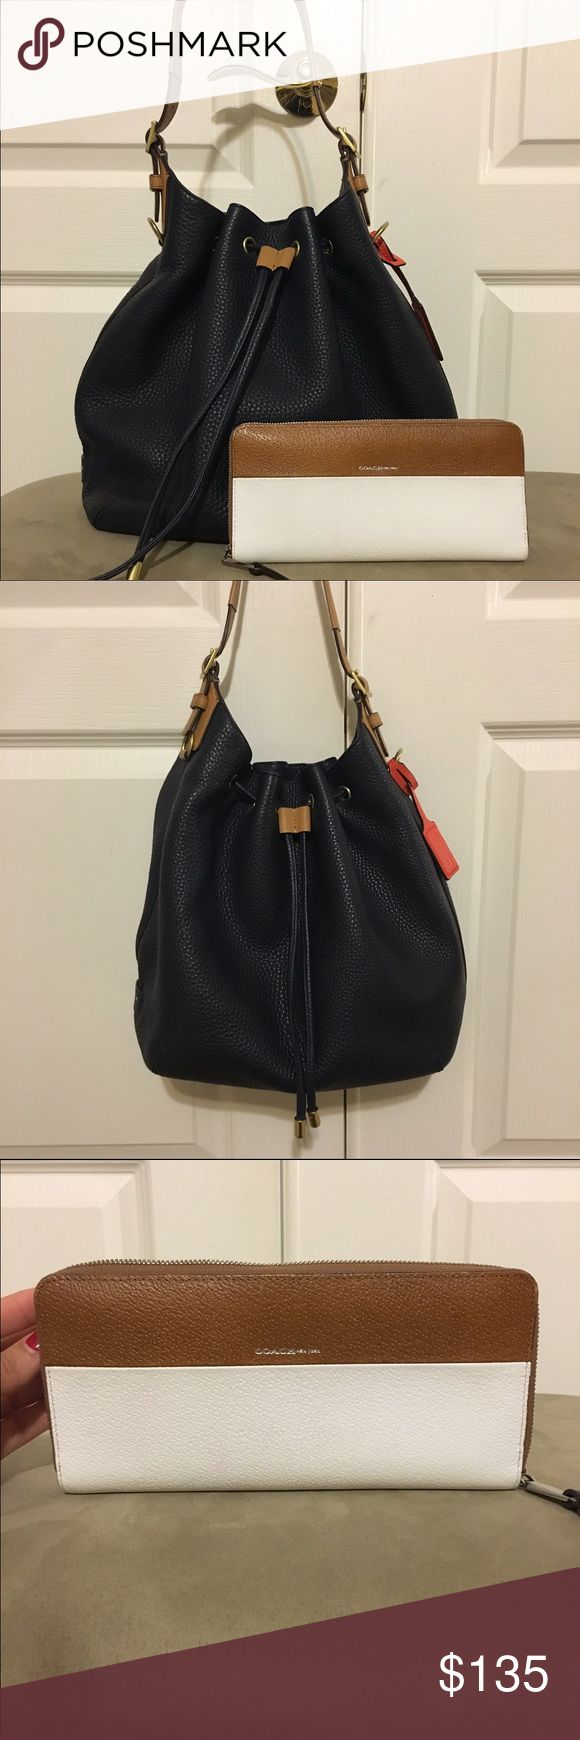 Coach Legacy Drawstring & Accordion Wallet Midnight blue pebble leather Coach drawstring and color block wallet. Prior owned and gently used but still in great condition. Coach Bags Satchels